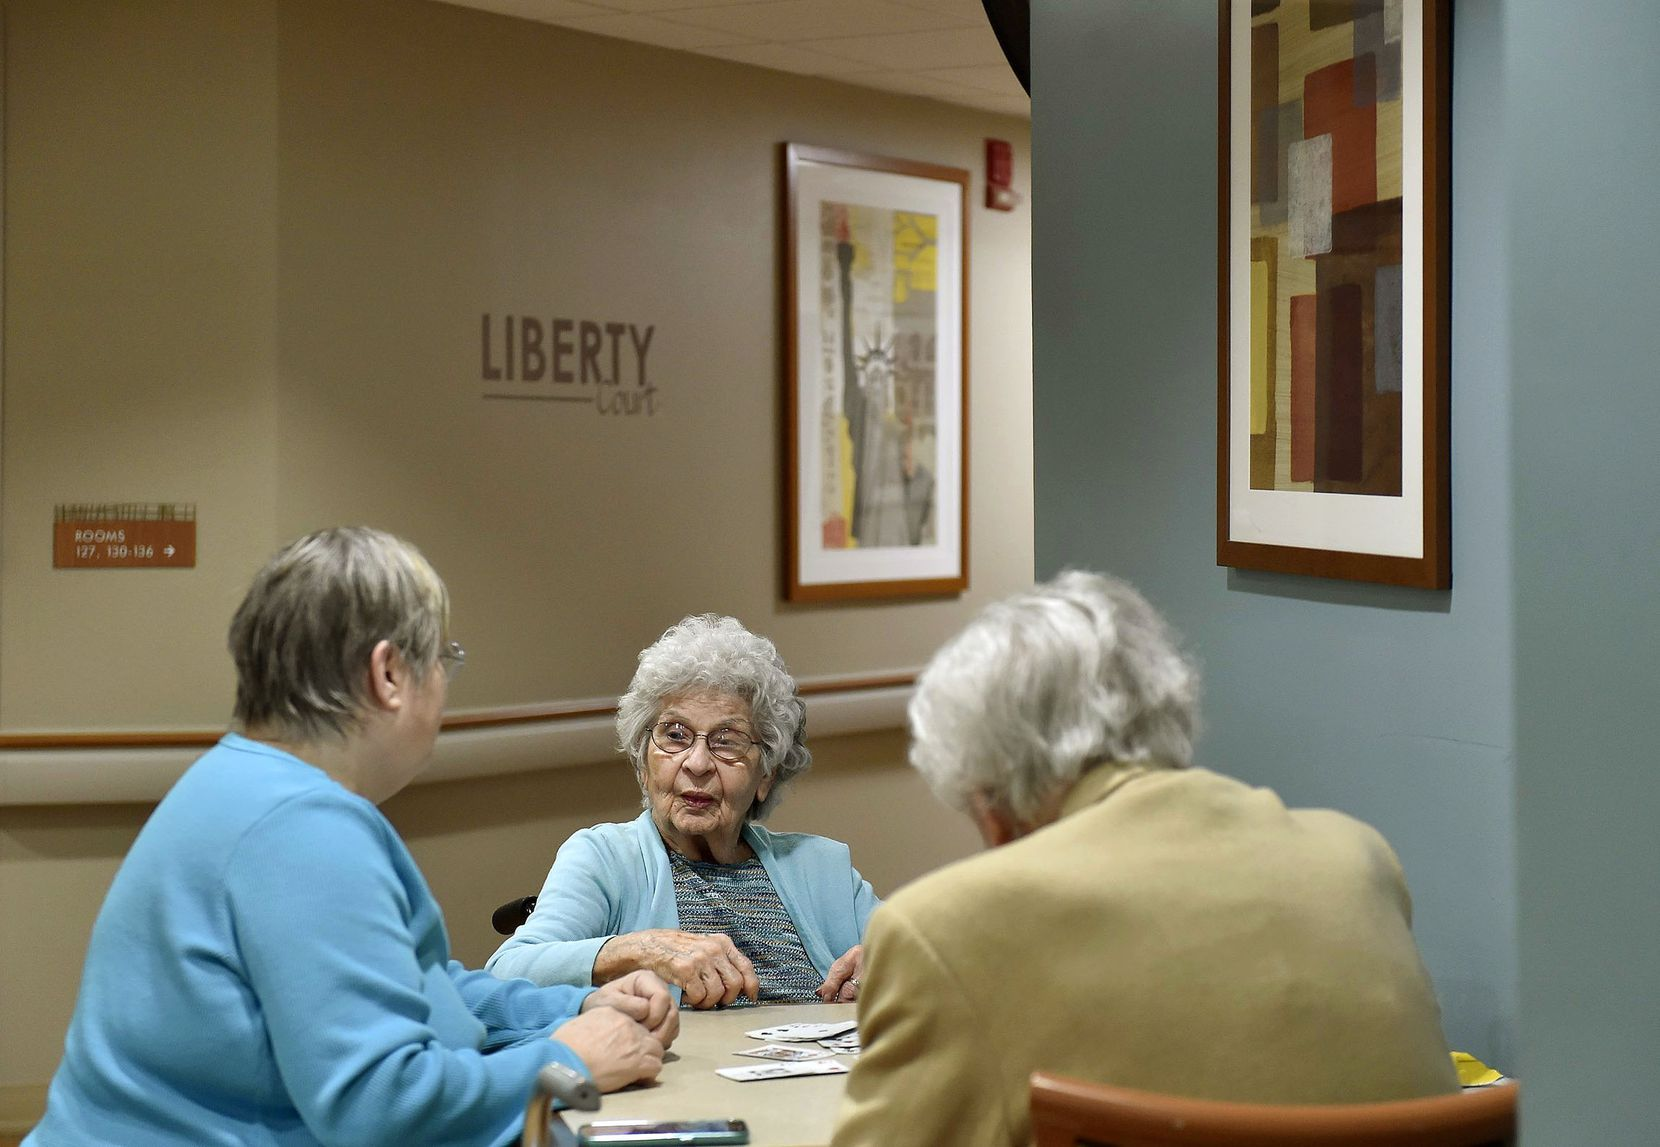 Phylas Lose, center, plays cards with her daughter Jan Morehead (left) and a friend at Lakeview Village in Lenexa, Ark. Medicare's Nursing Home Compare website gives Lakeview Village five stars in all categories.